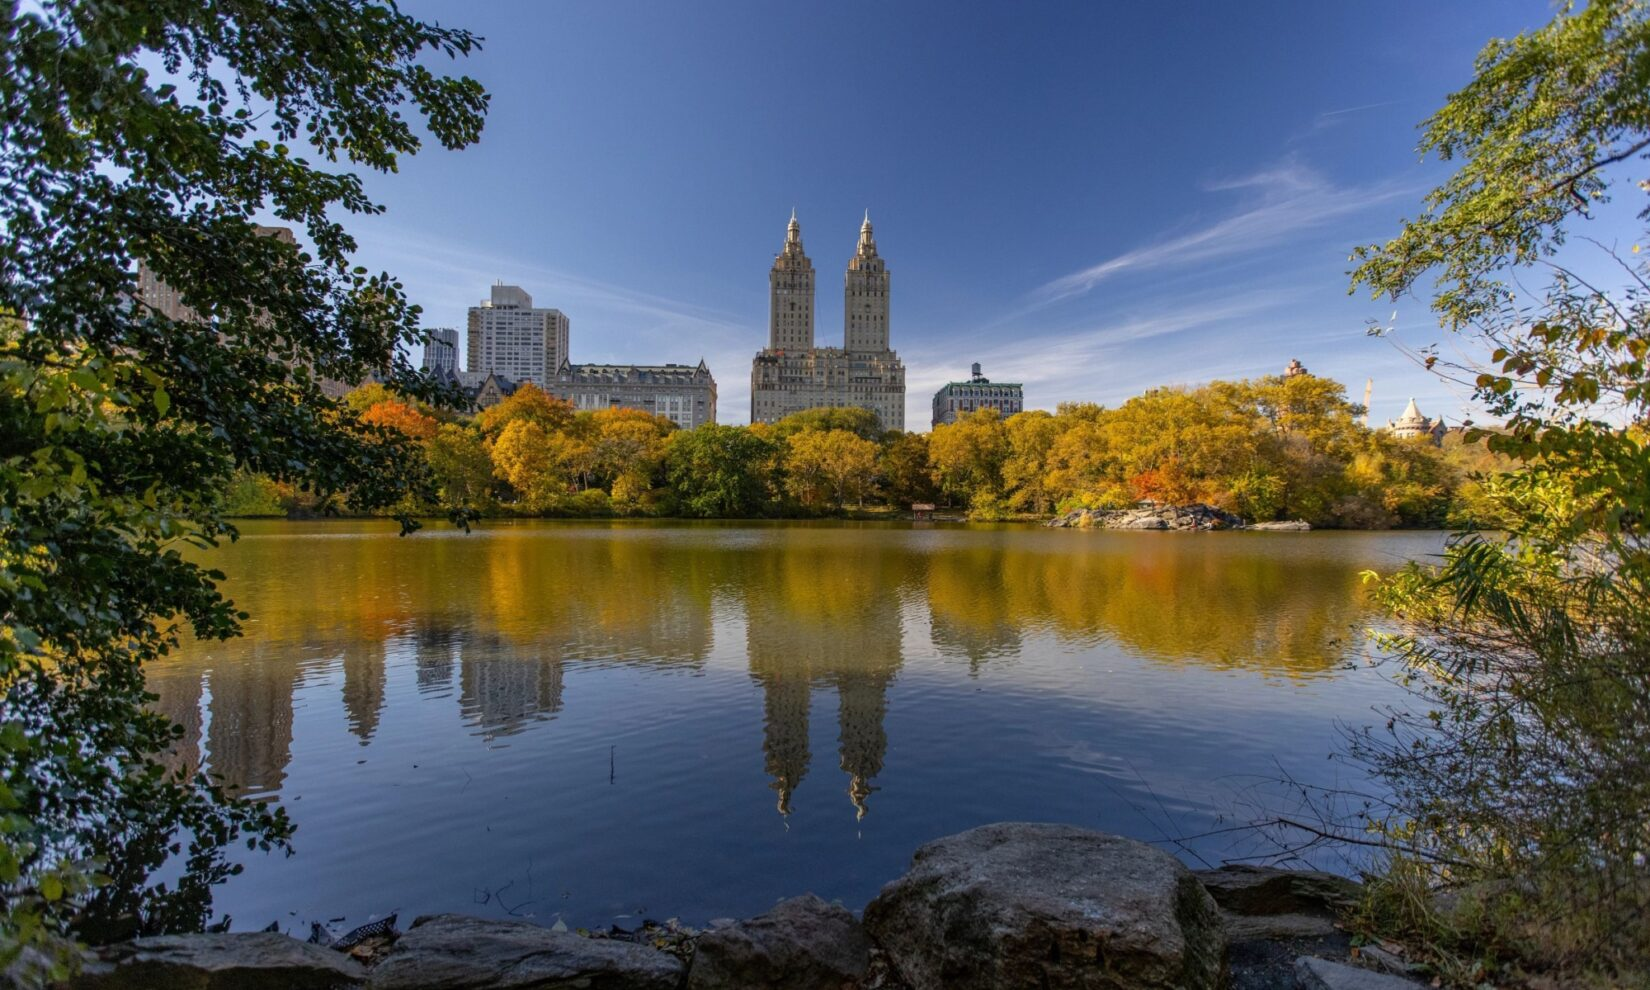 Buildings on Central Park West are reflected in still waters, viewed from the other side of the Lake in the Ramble.